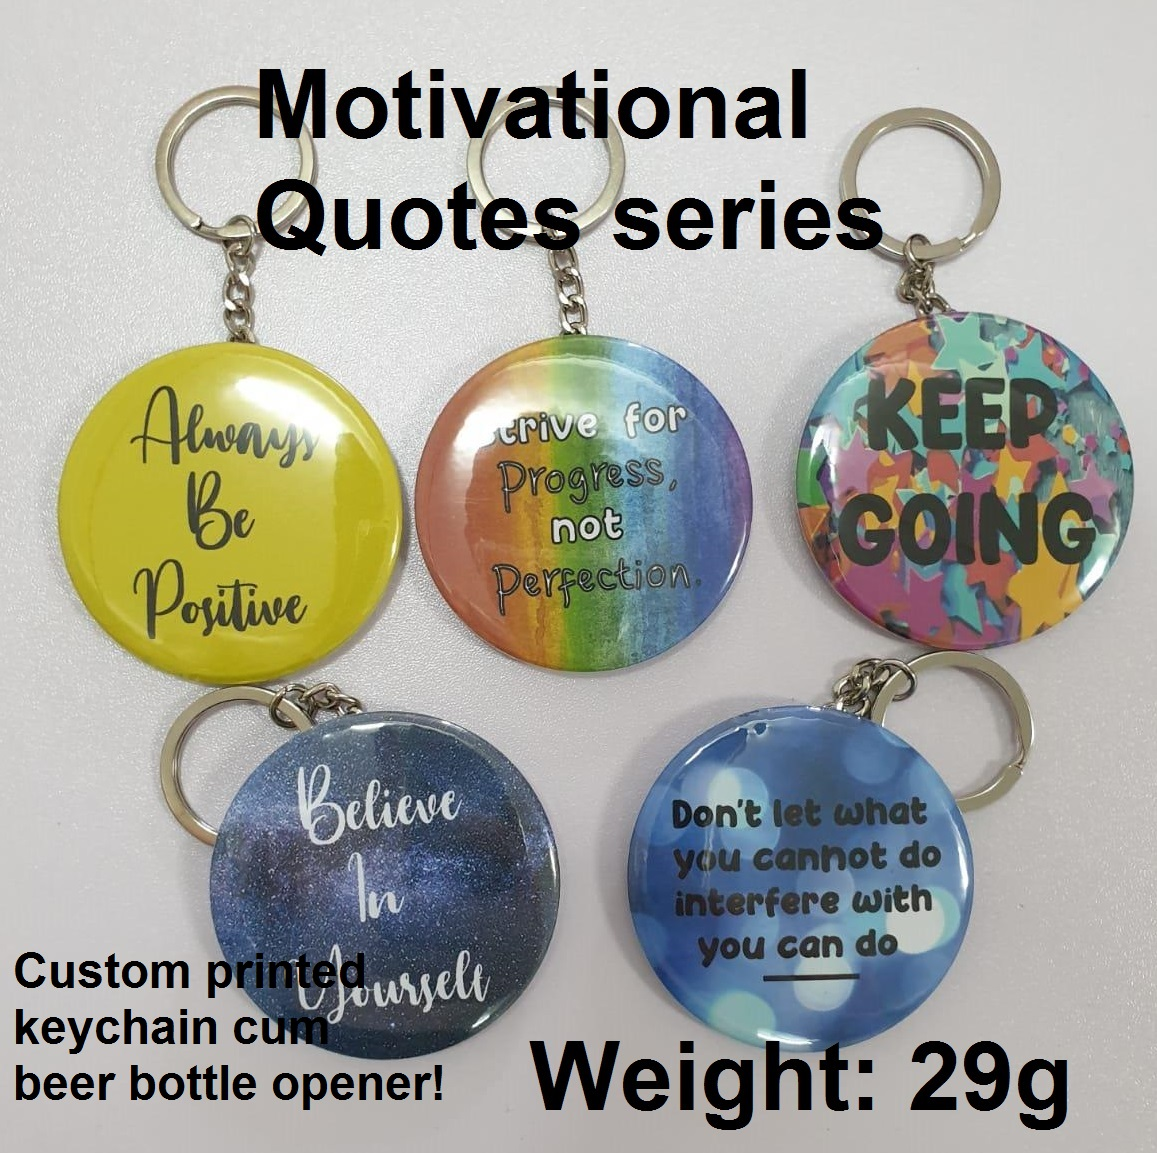 58mm custom printed bottle opener (motivational reward series)